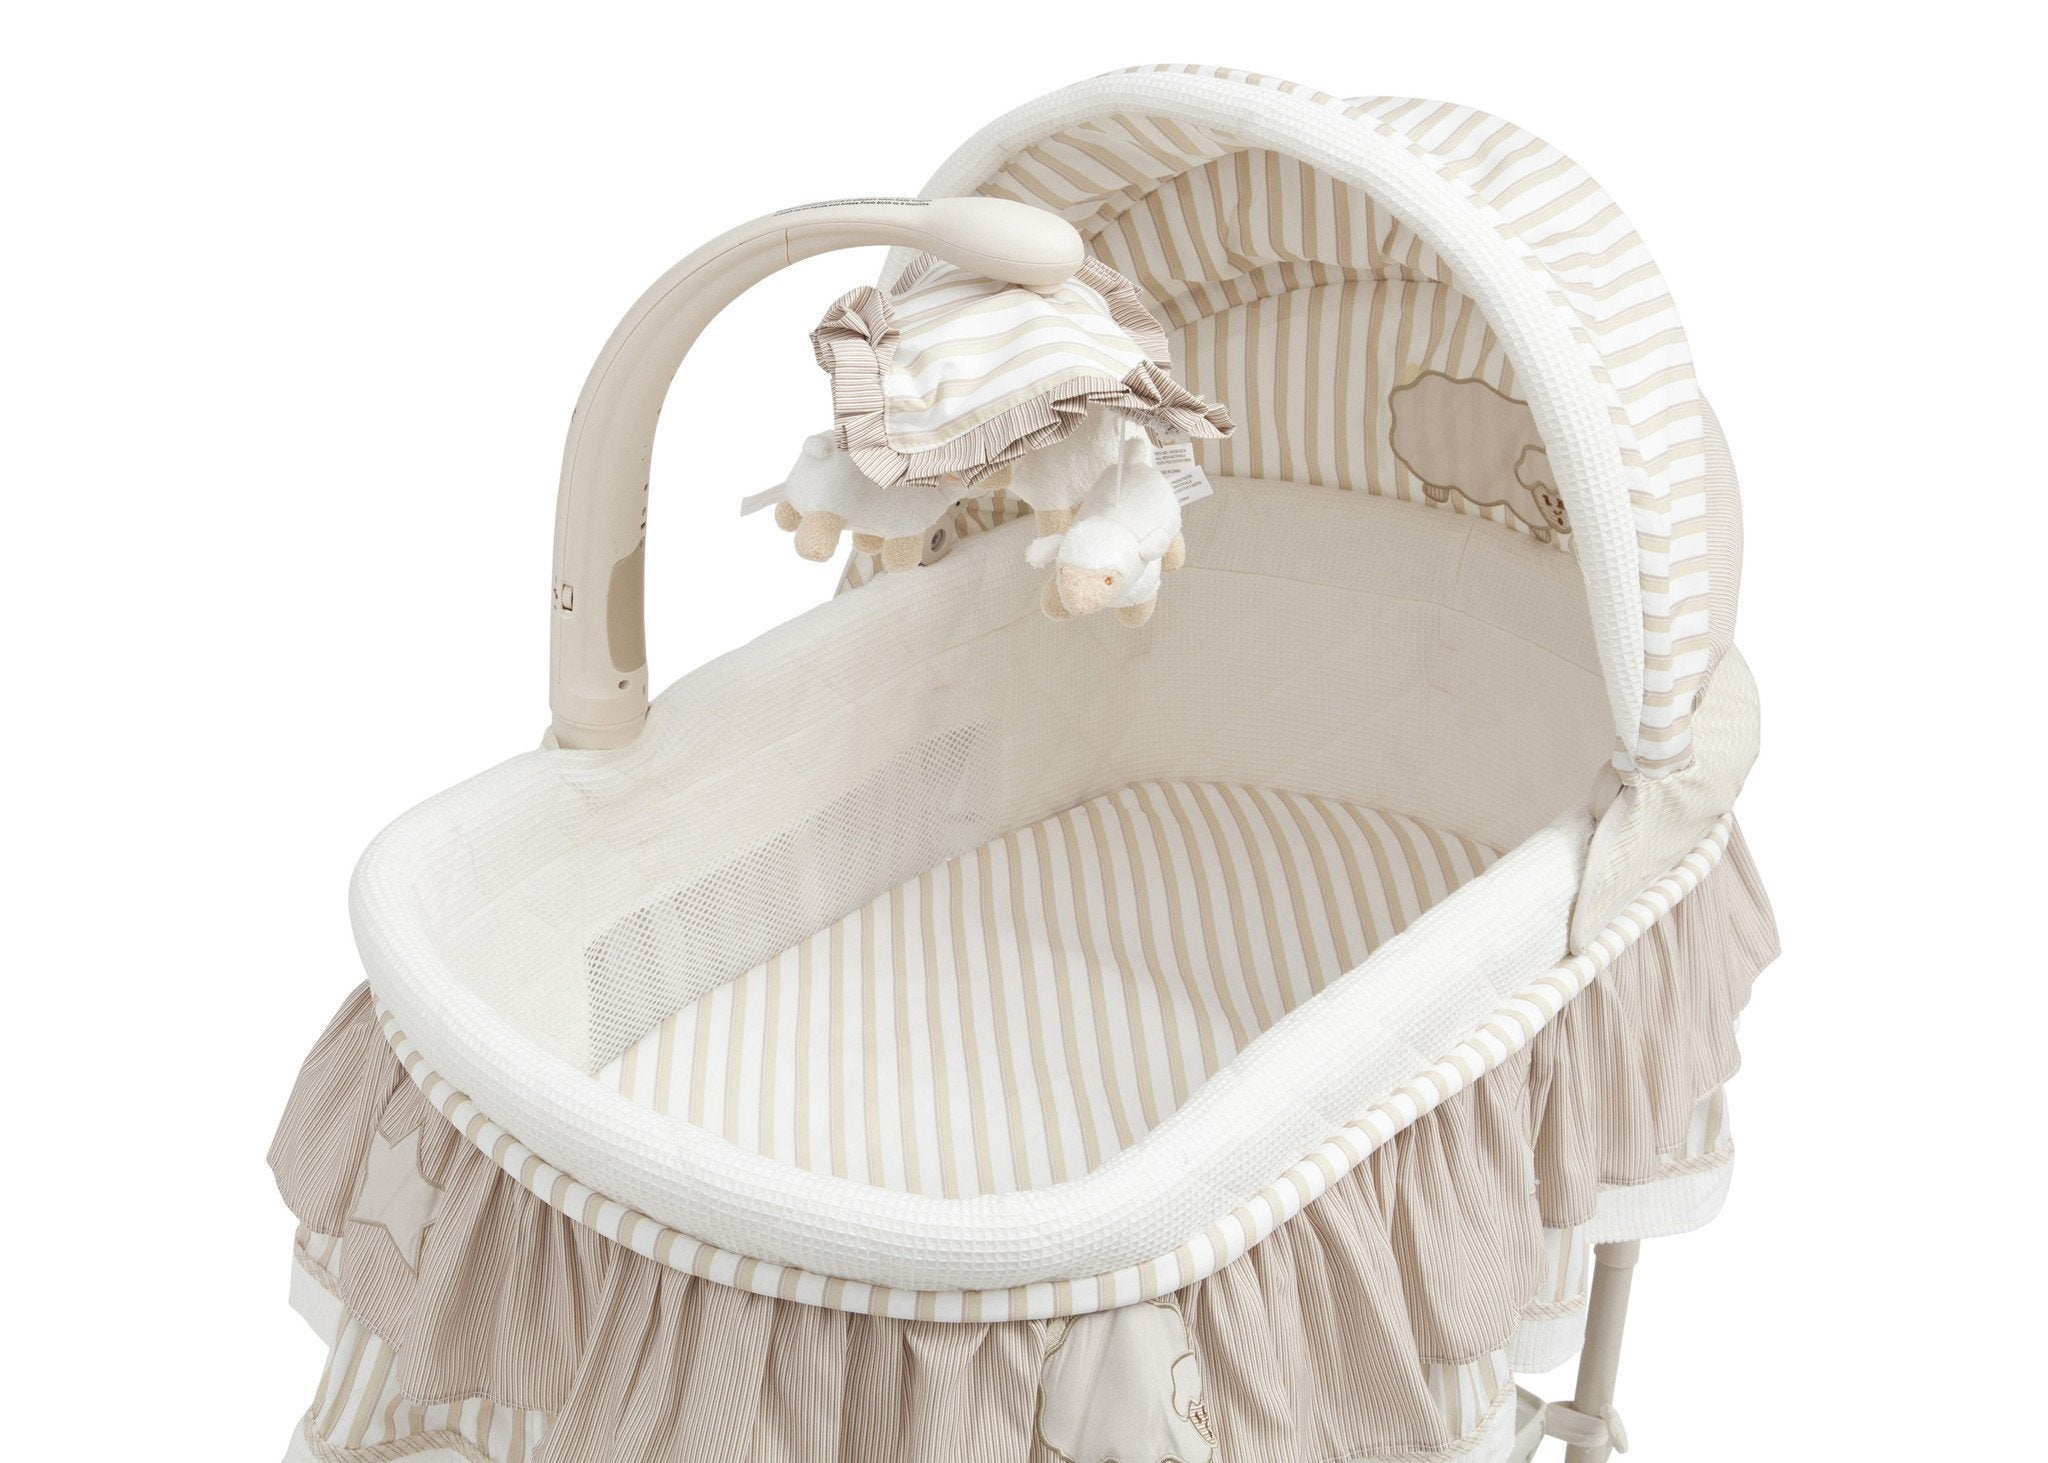 Delta Children Briarwood (272) Rocking Bassinet Detail View b4b